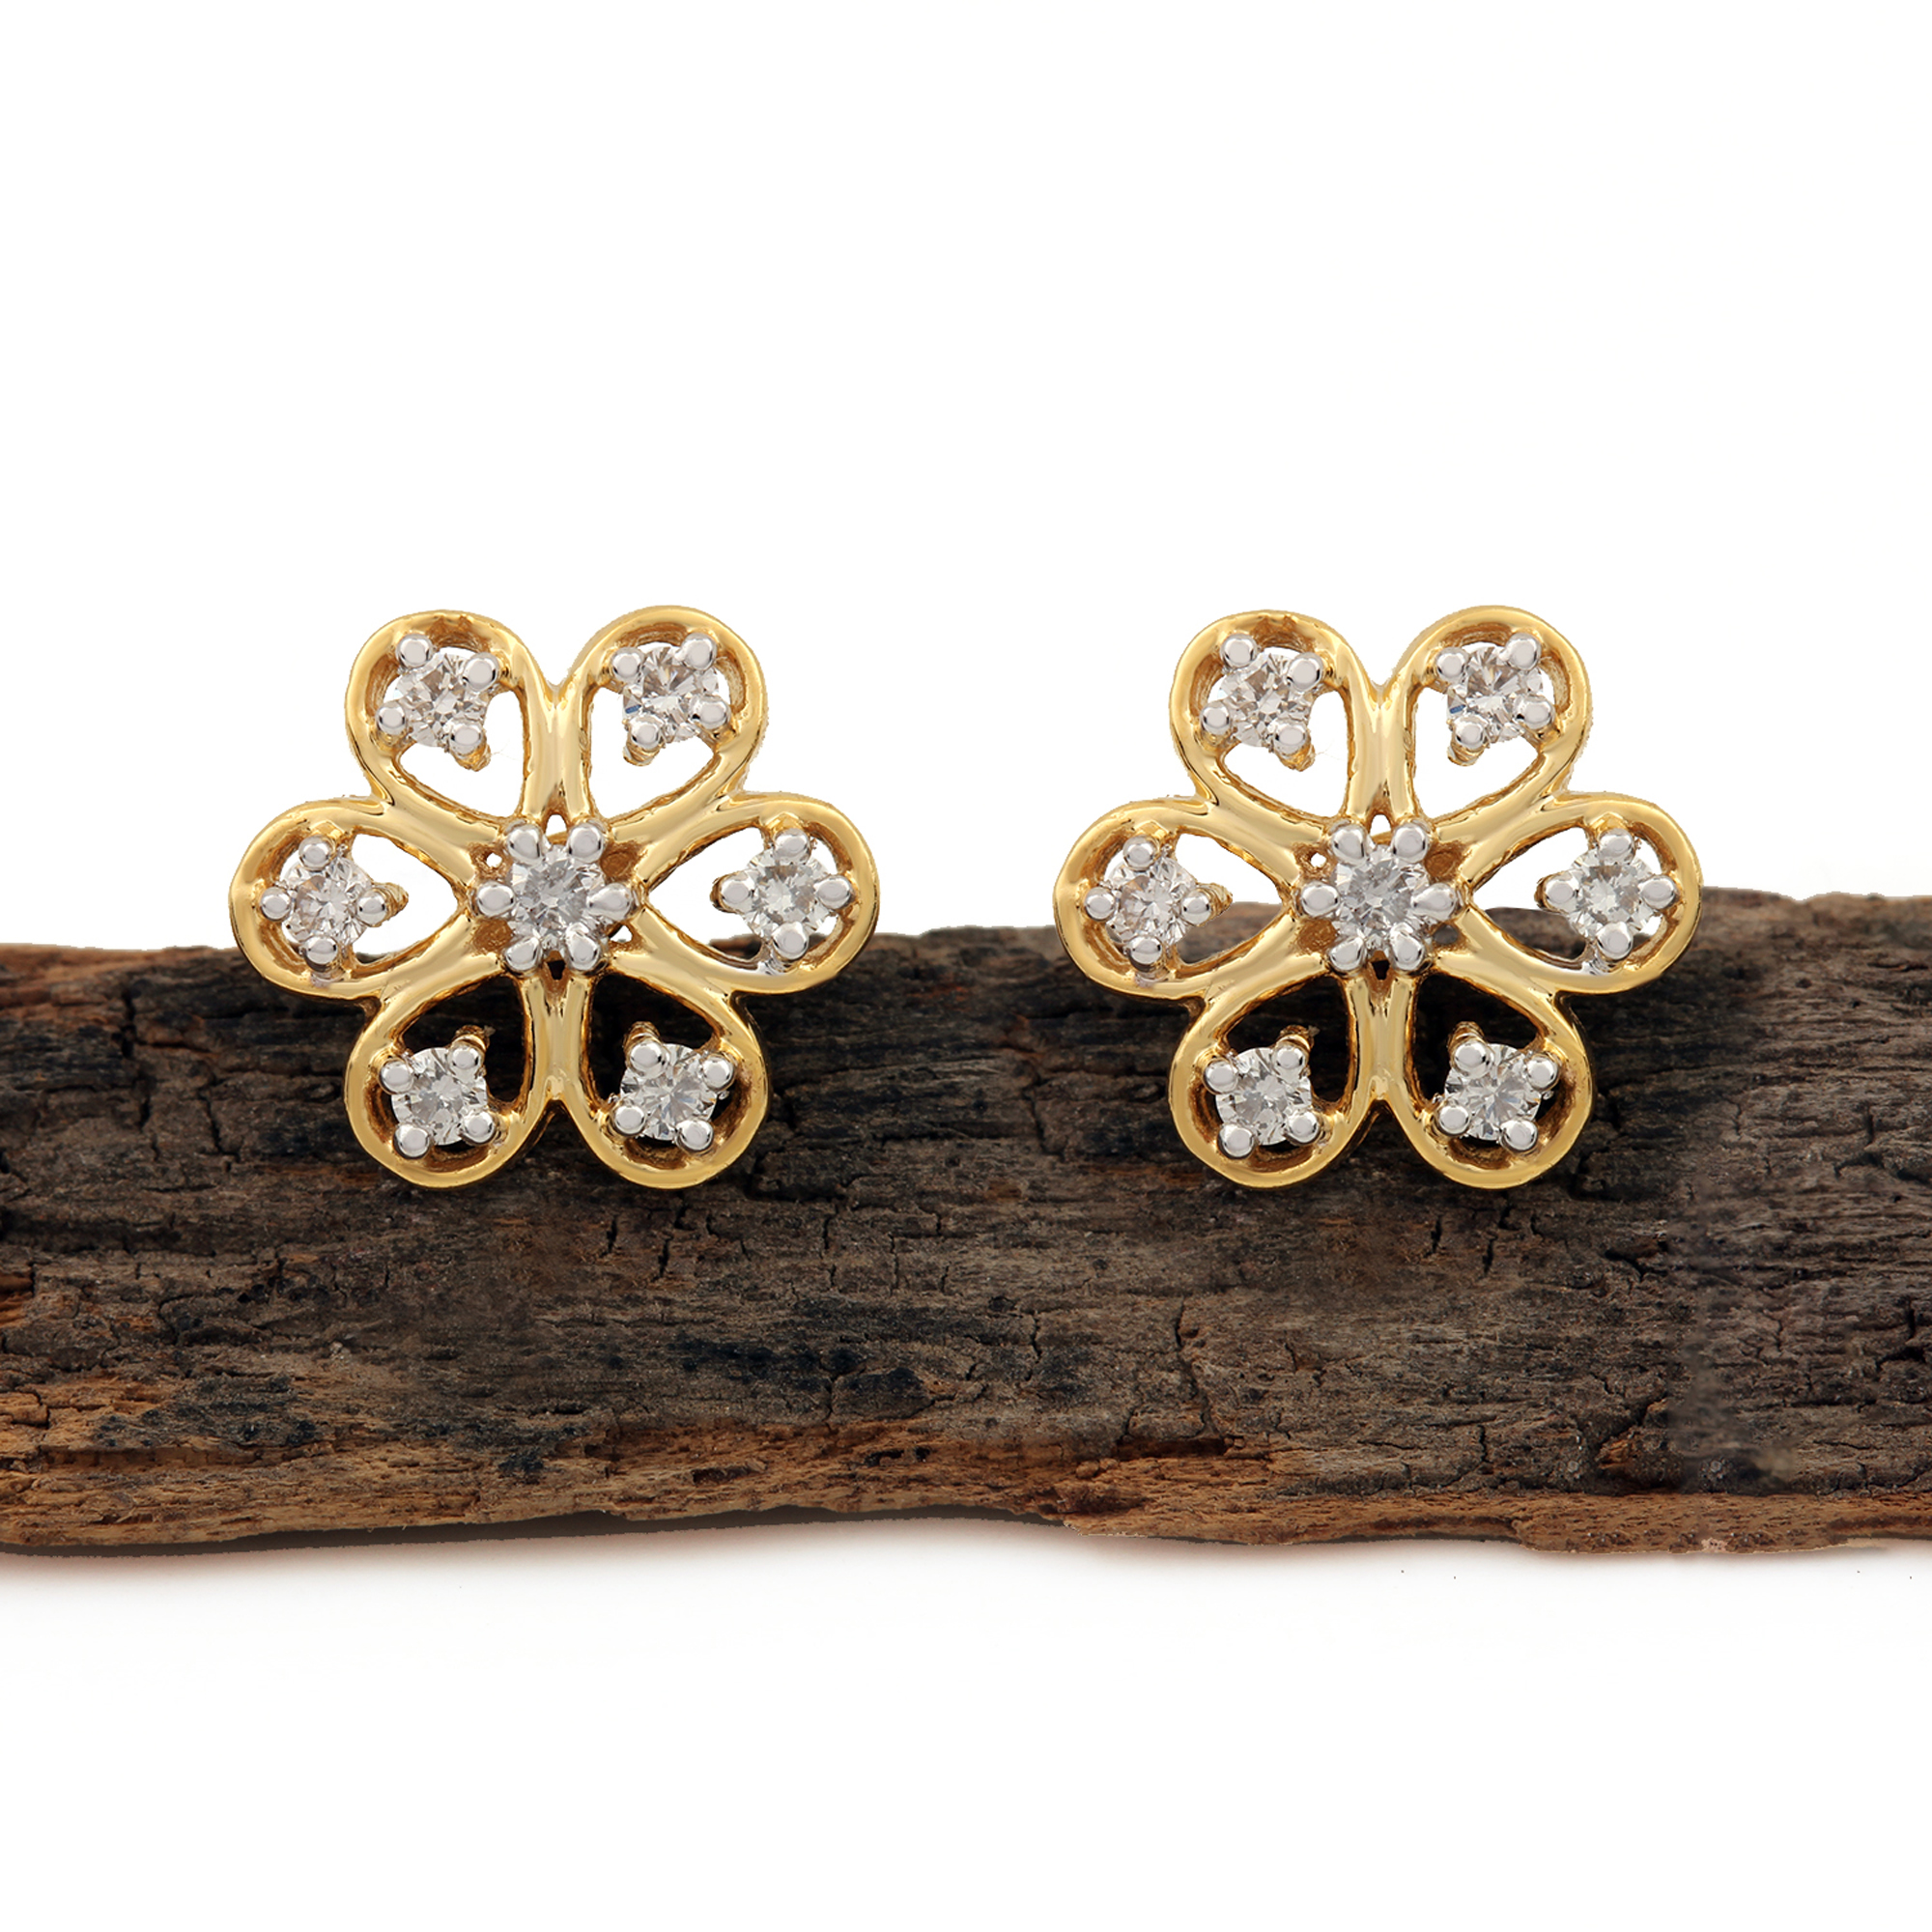 Solid Gold Natural Diamond Earrings